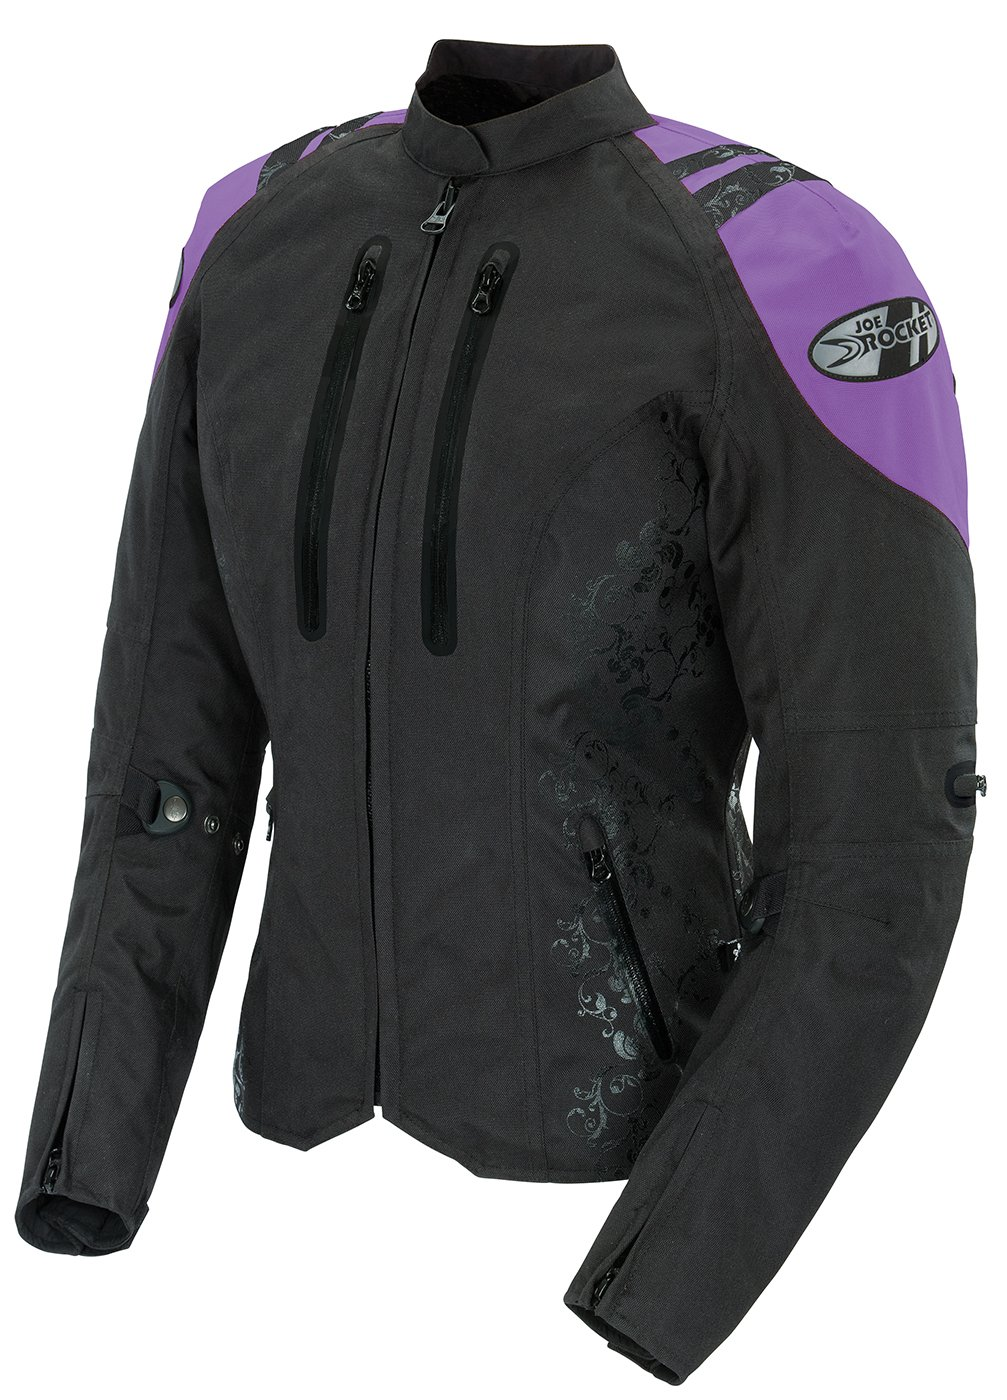 Joe Rocket Atomic 4.0 Women's Textile Riding Jacket (Black/Purple, 2-Diva)